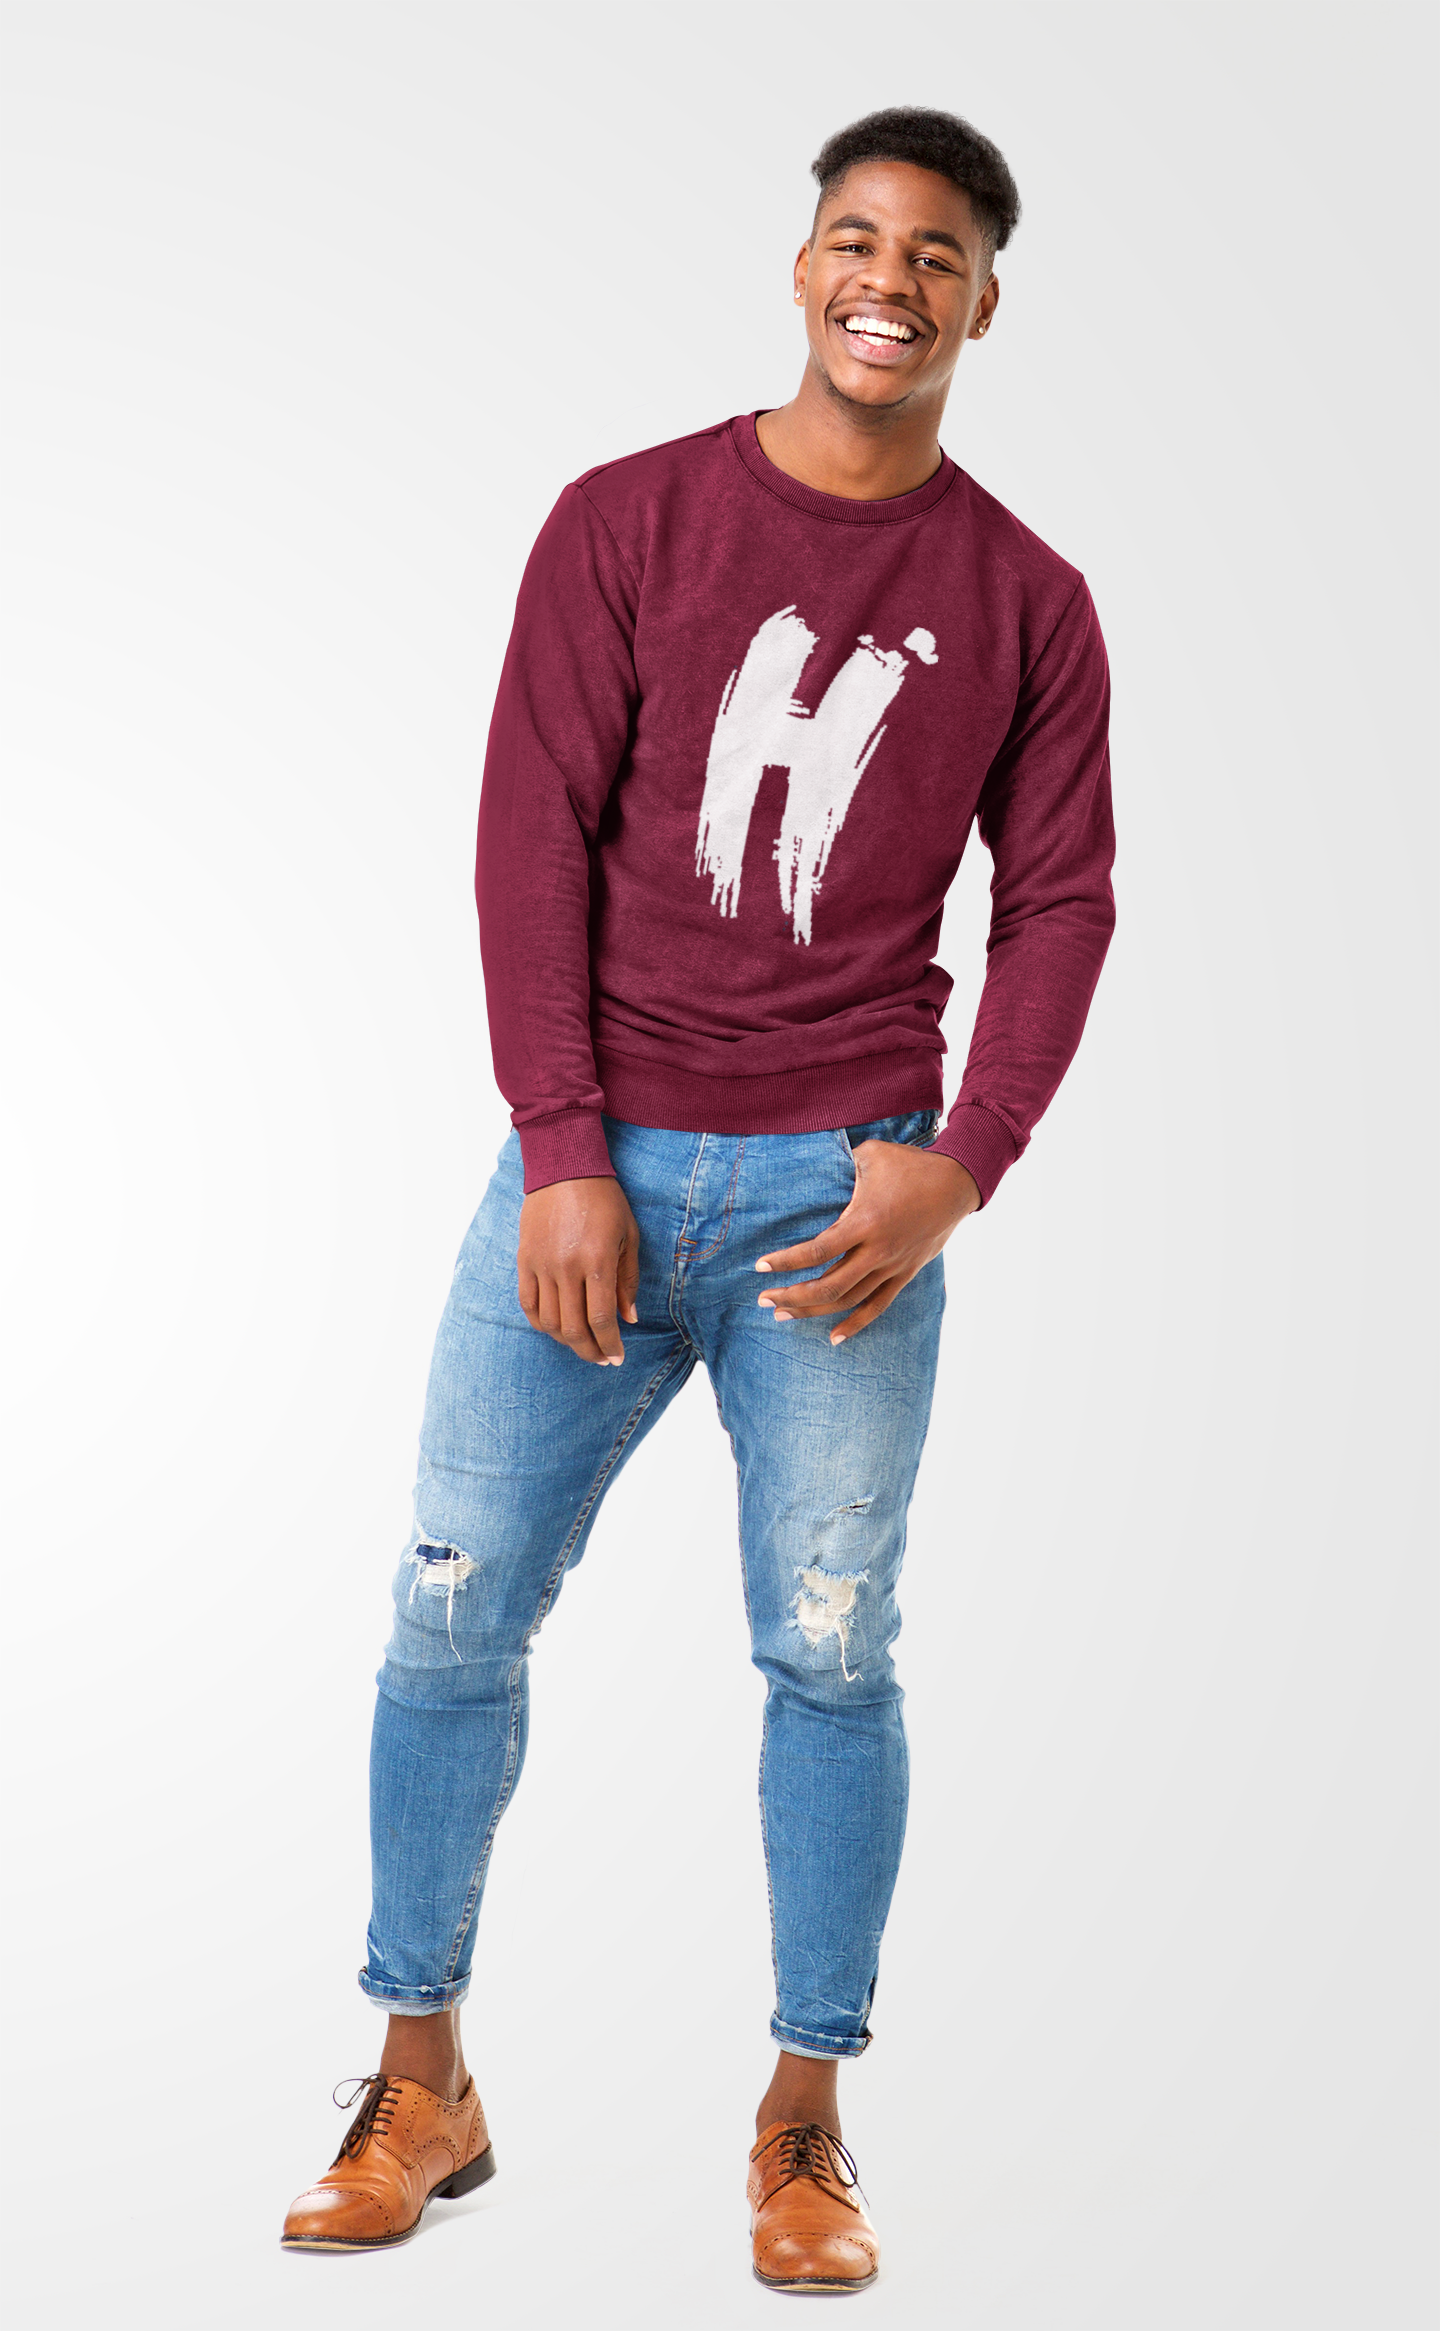 HOPE CENTER - MAROON SWEATSHIRT | UNISEX